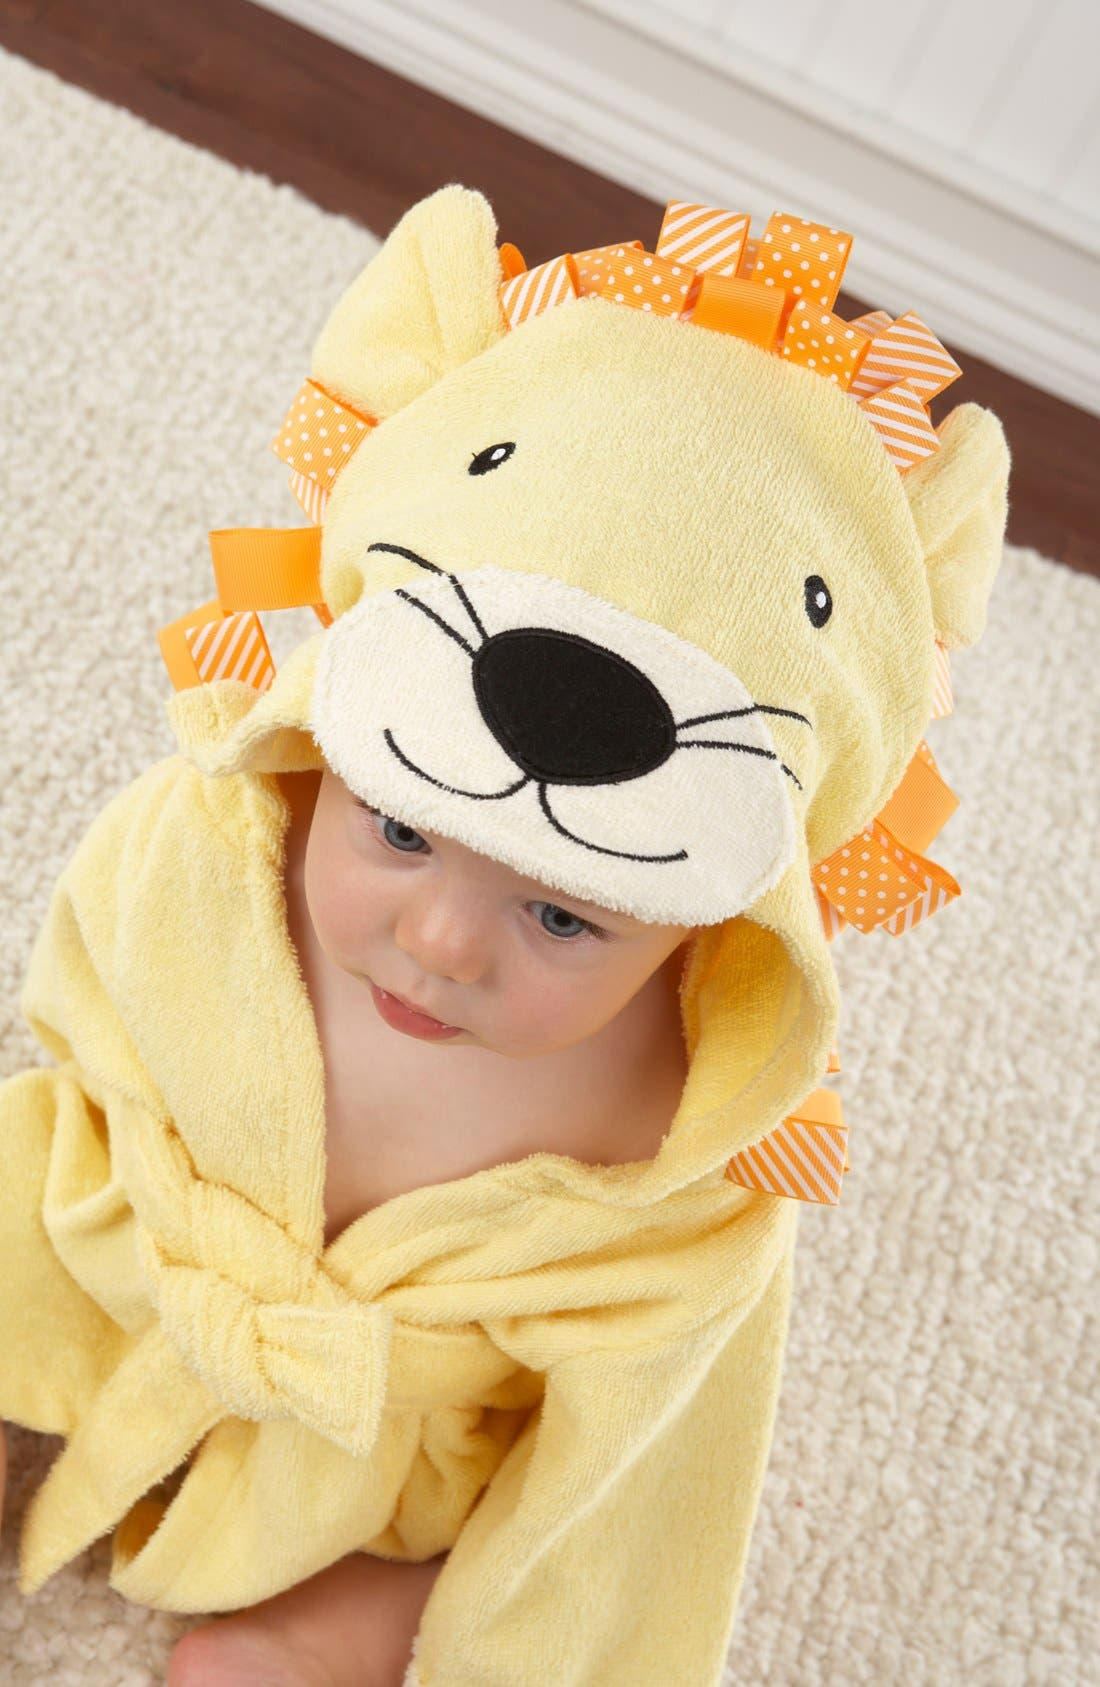 Baby Aspen 'Big Top Bathtime' Lion Hooded Terry Robe (Baby)